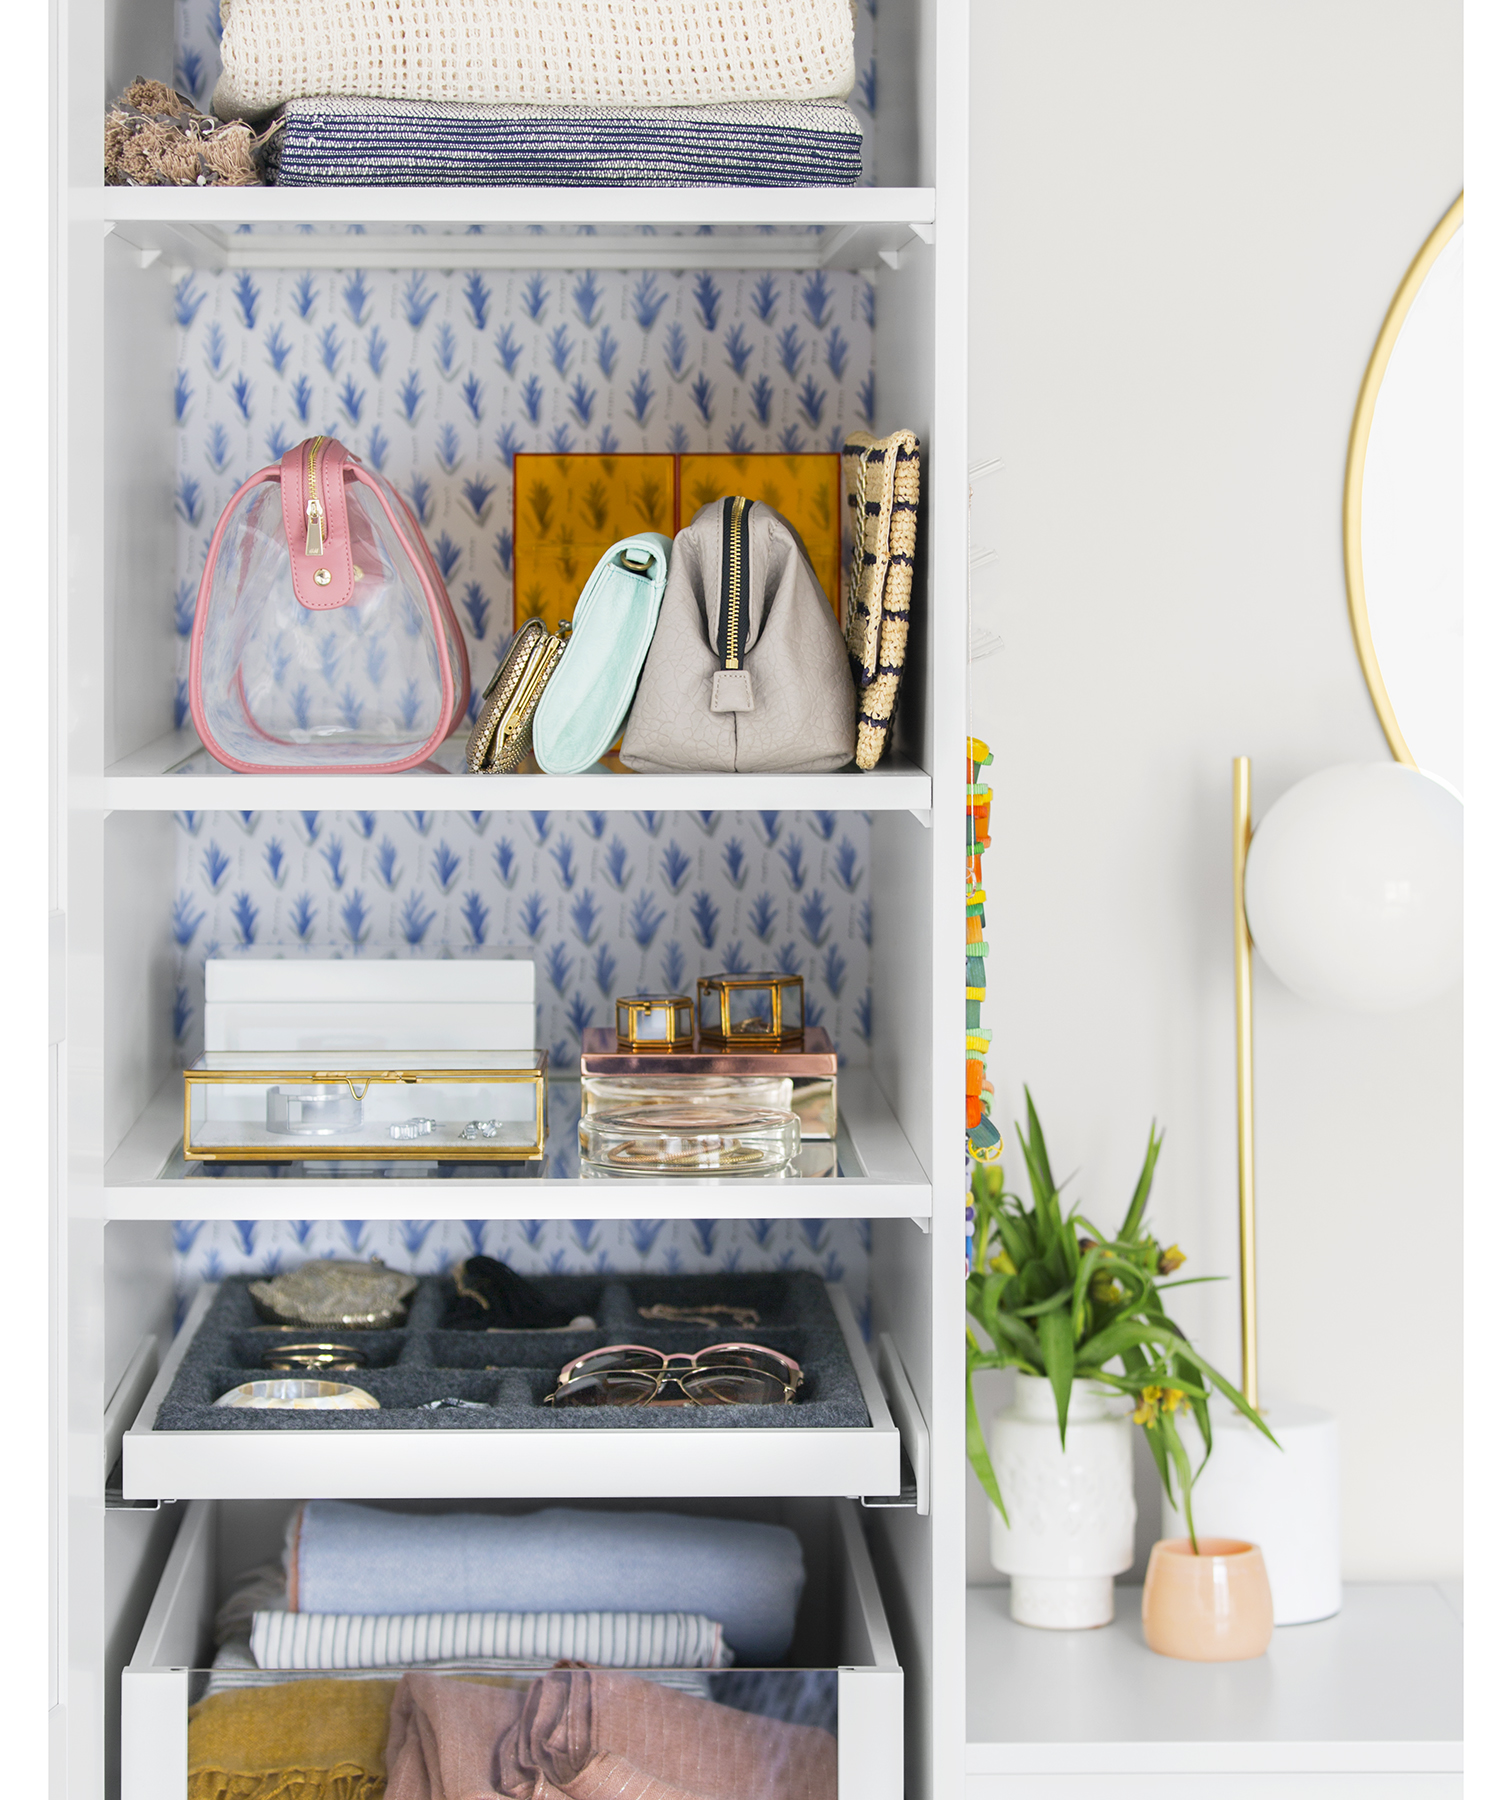 Patterned papered shelves